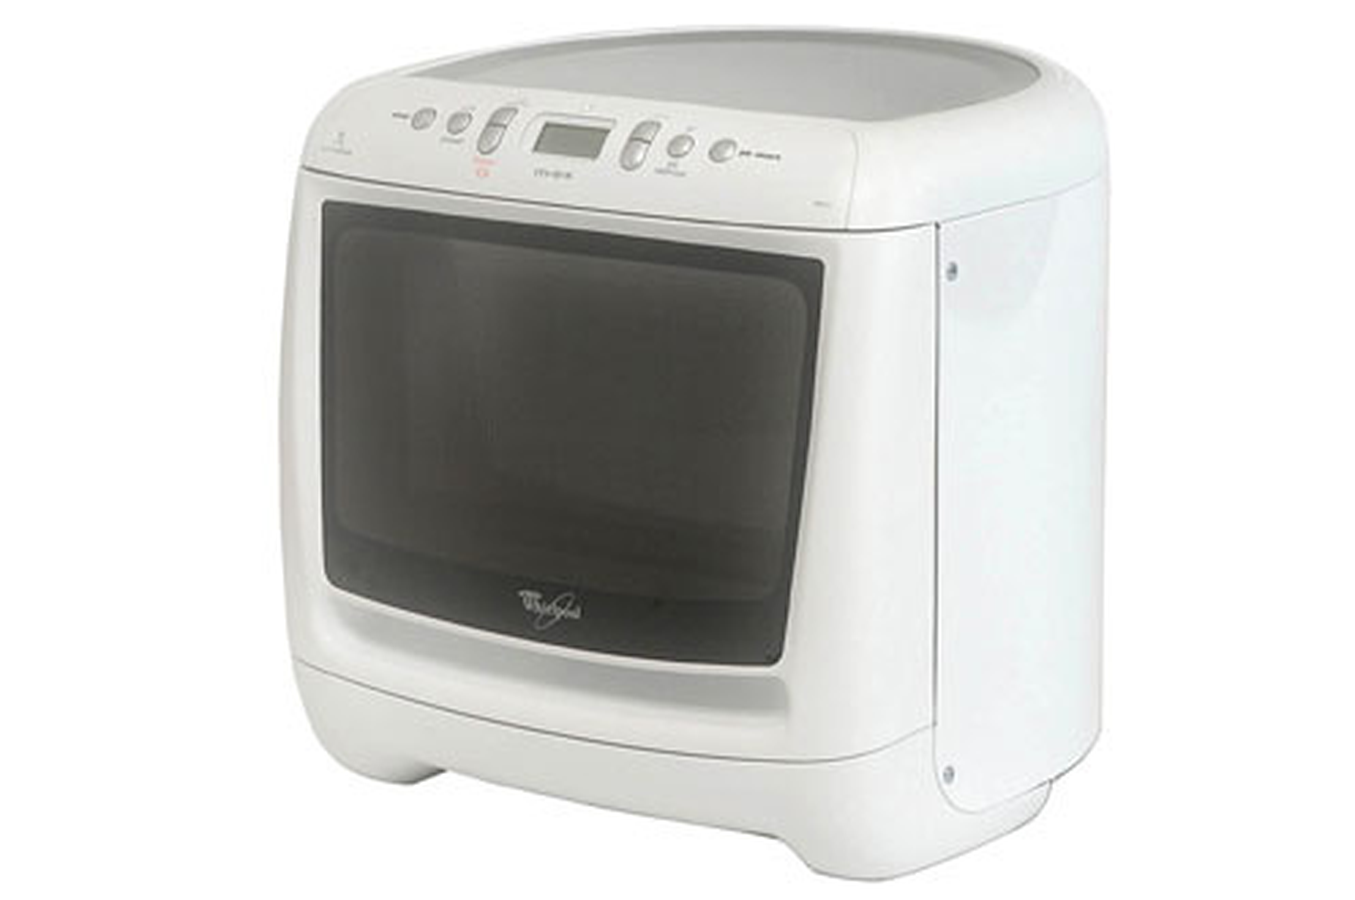 Micro ondes whirlpool max 25 awh max25awh 2047160 darty - Micro onde whirlpool max ...